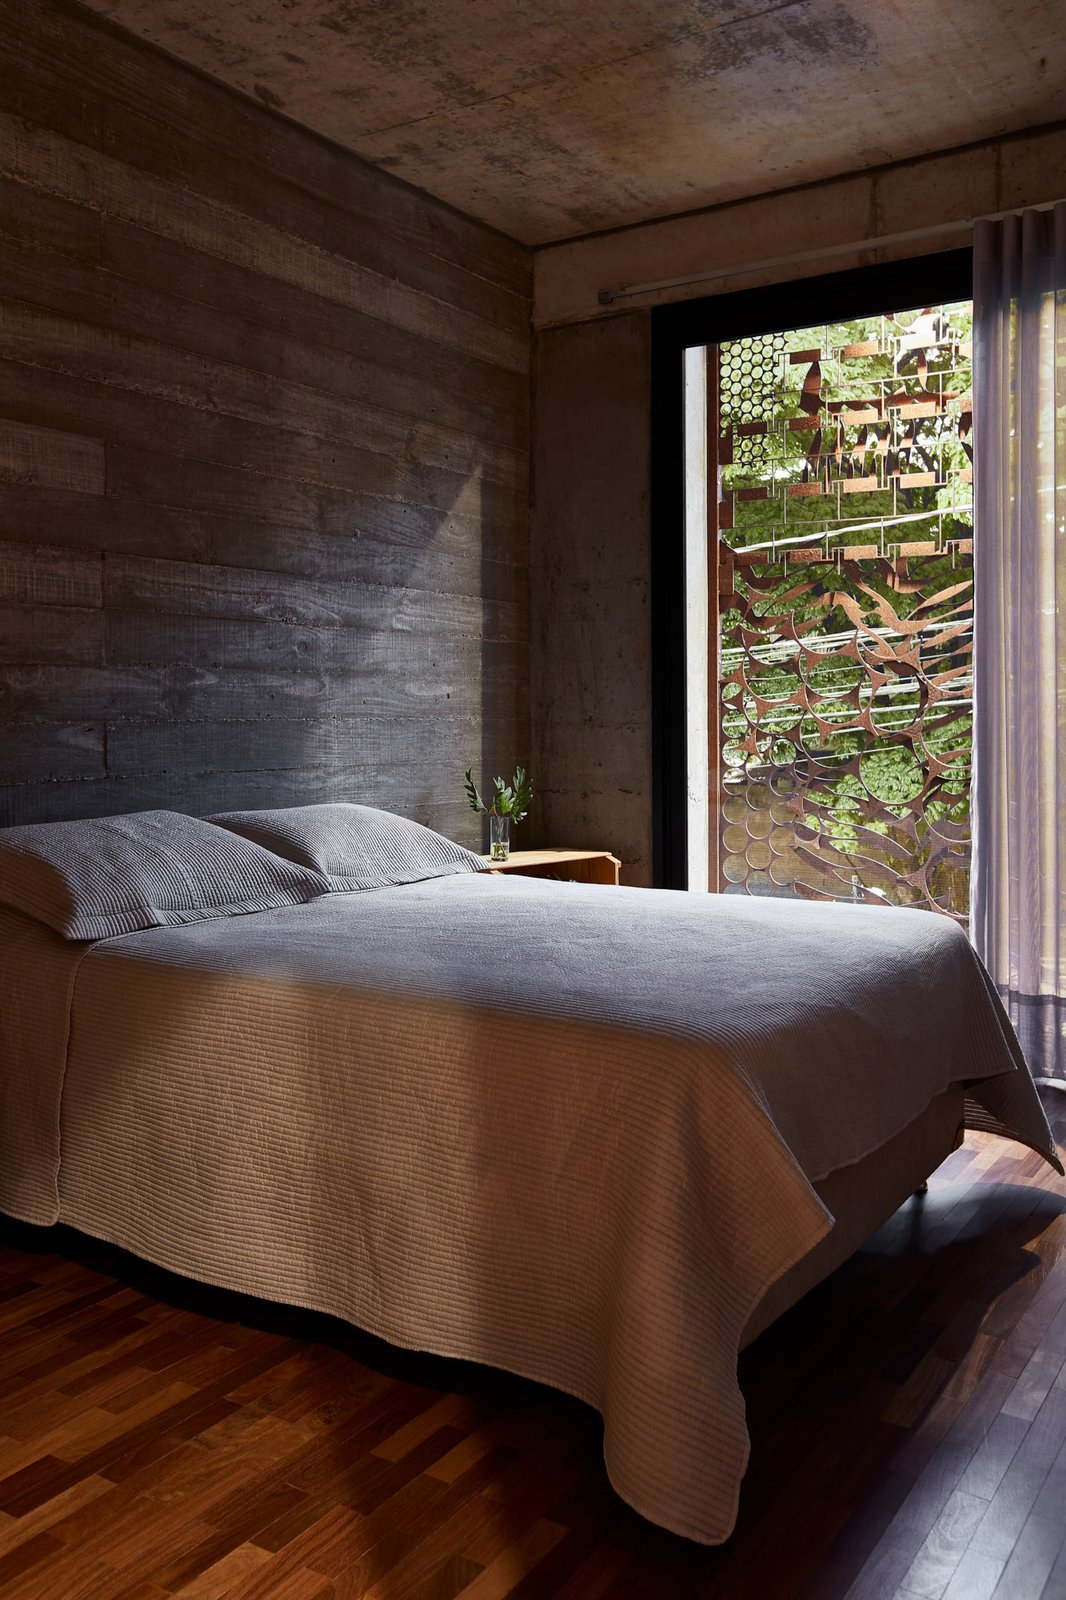 The Corten steel enclosure provides the bedrooms with more privacy, and also serves as striking decorative façade.